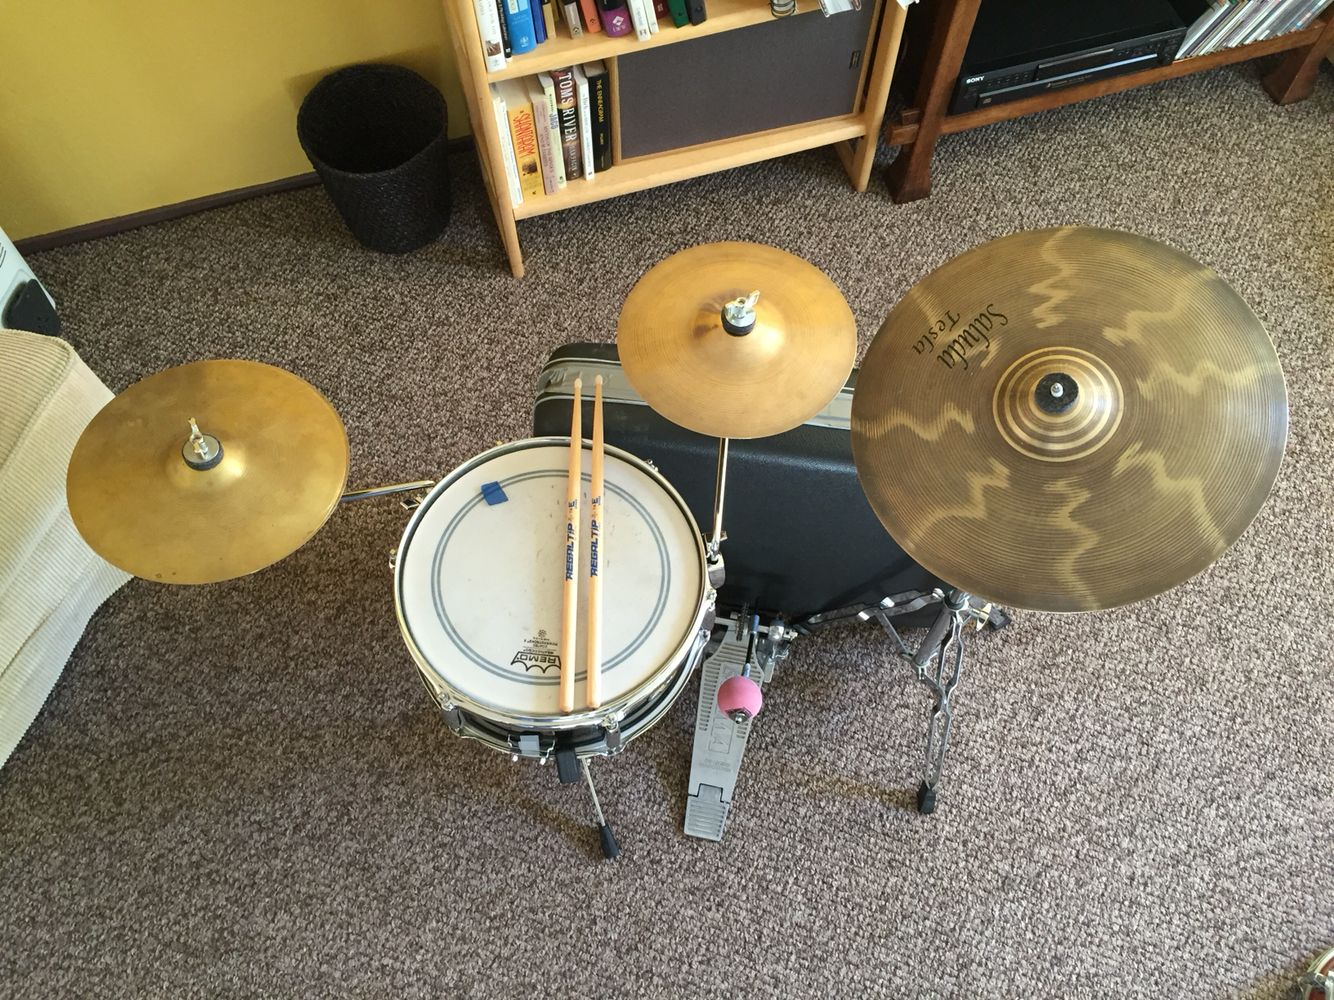 suitcase drum kit it all fits in the case suitcase bass sounds great drums drum kits. Black Bedroom Furniture Sets. Home Design Ideas